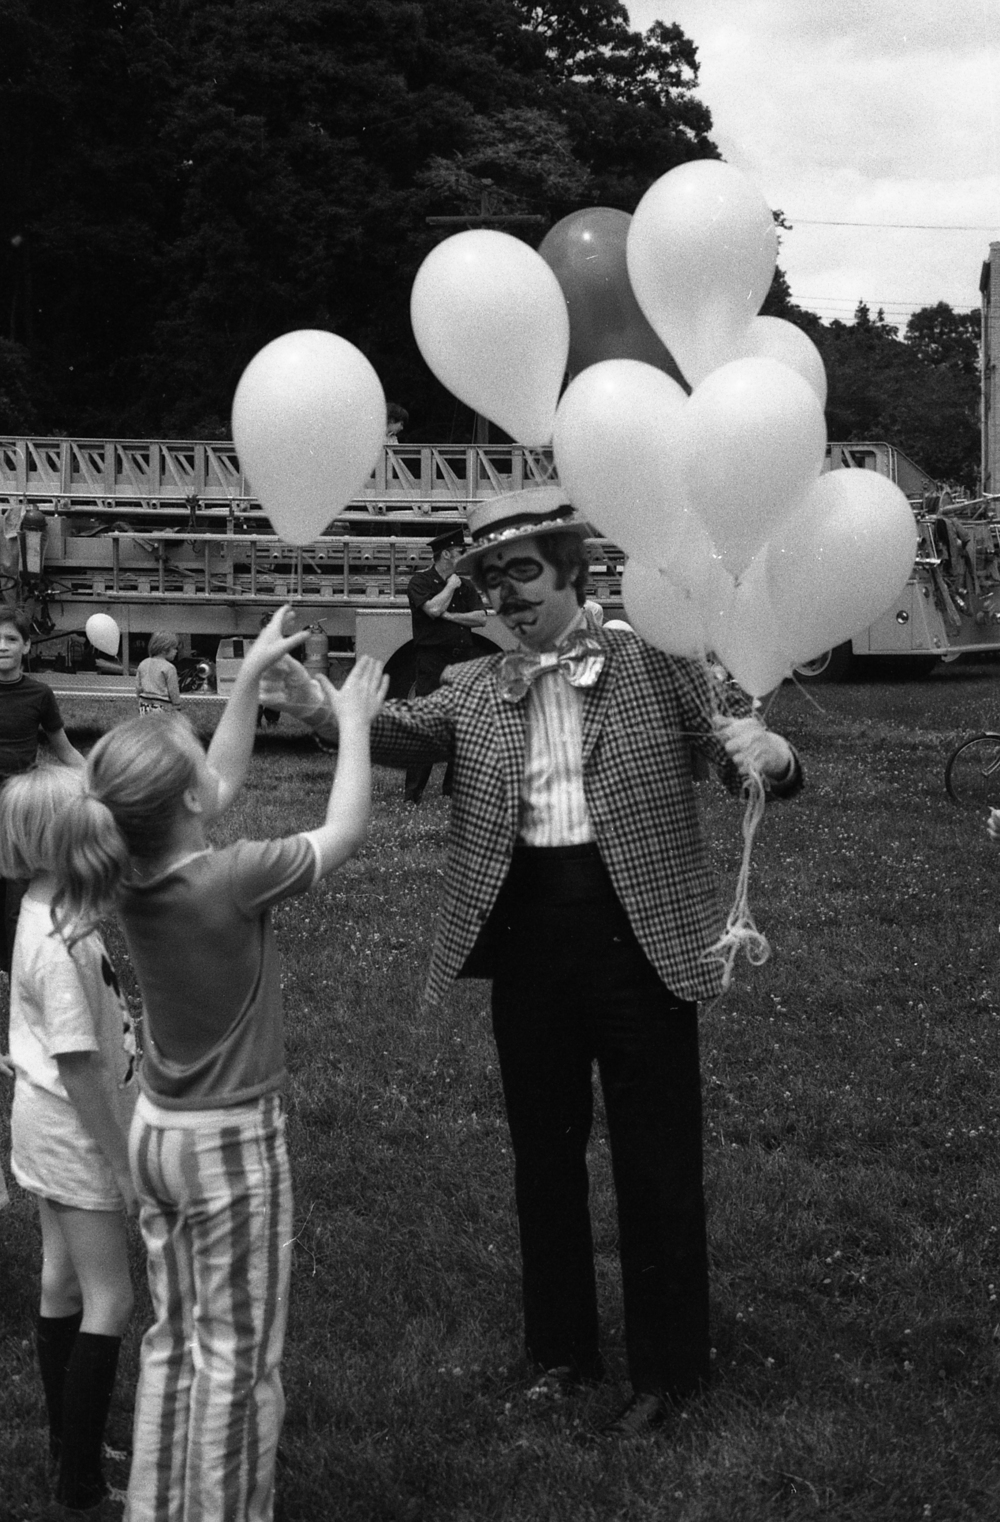 Picture 01: Who is the man handing out the balloons?